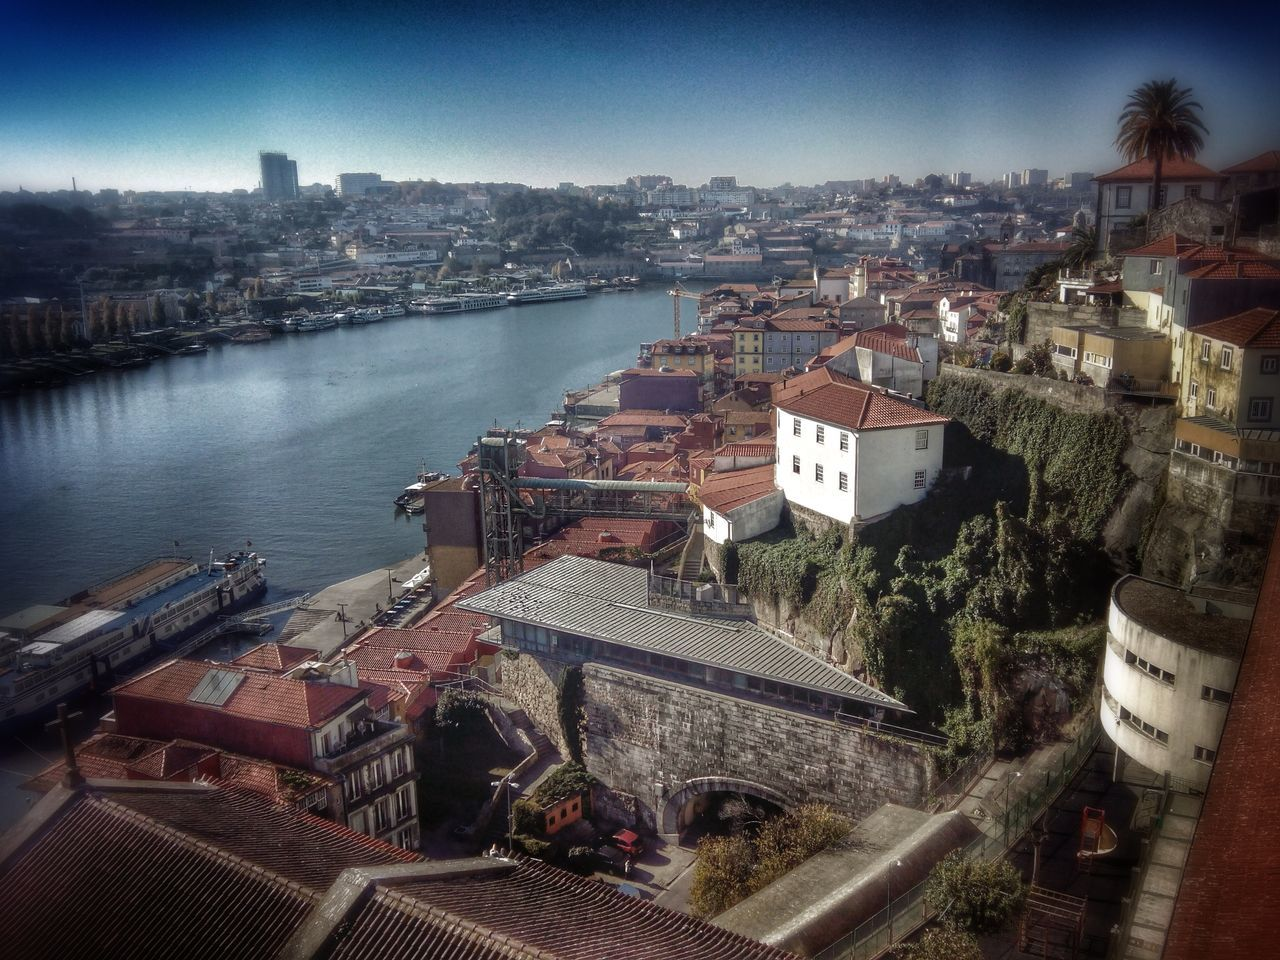 architecture, built structure, building exterior, high angle view, water, river, day, outdoors, cityscape, no people, city, roof, transportation, bridge - man made structure, travel destinations, tree, sky